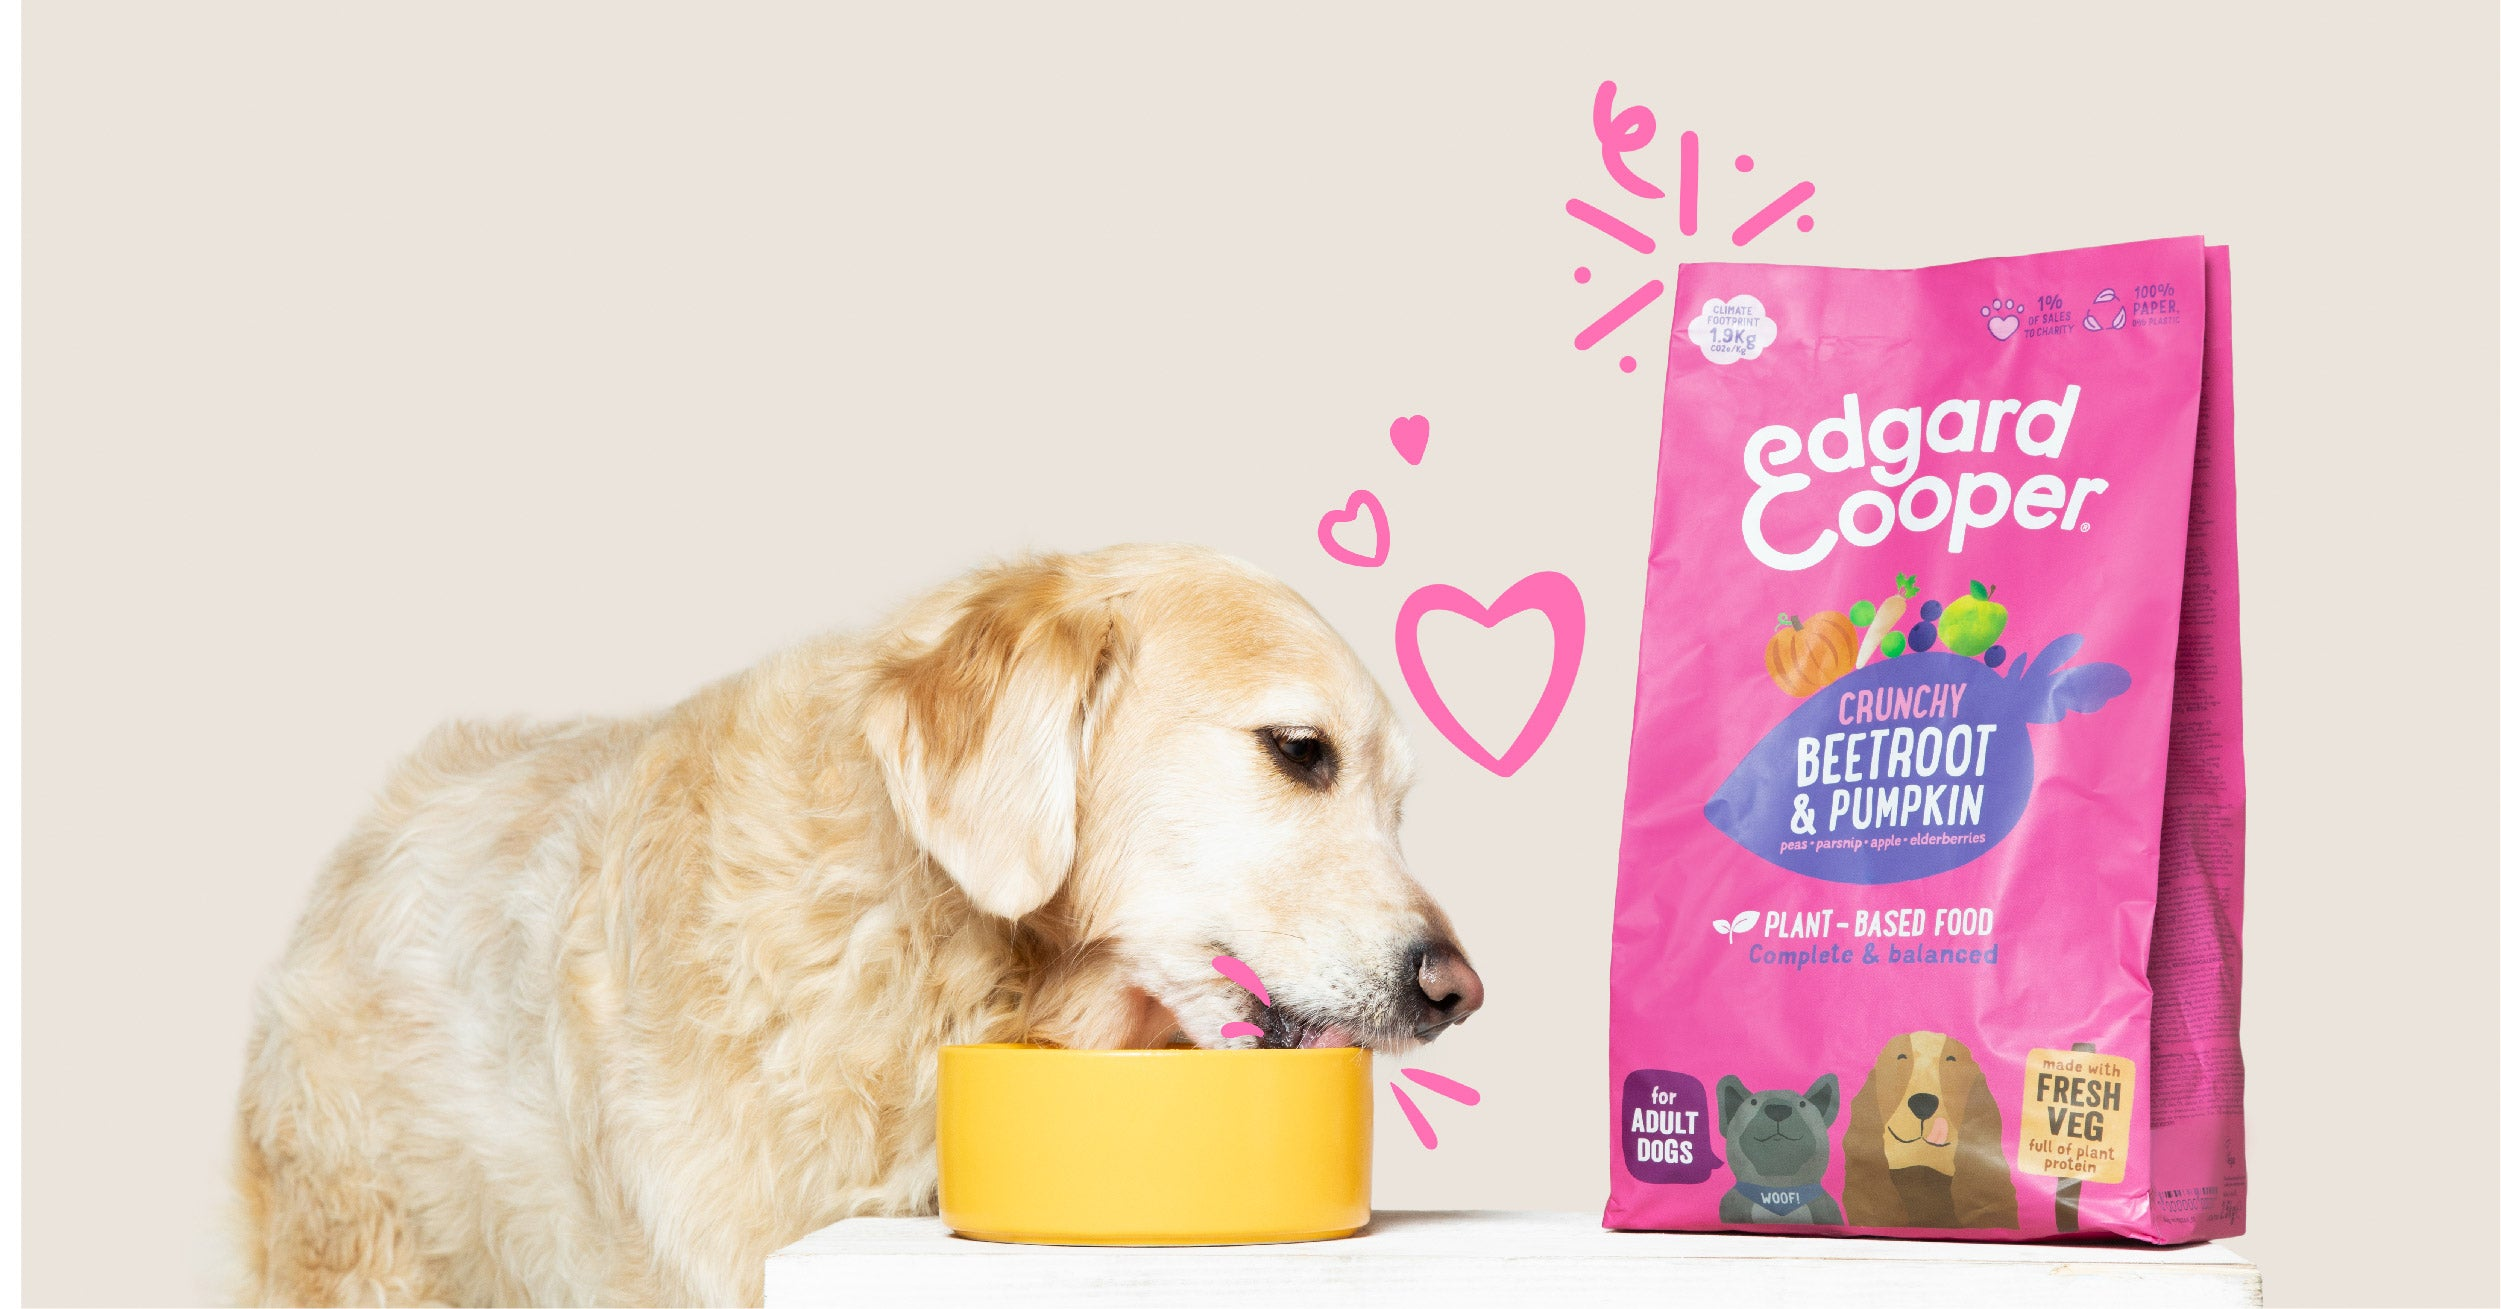 Picture of dog eating Edgard & Cooper plant-based recipe with Beetroot & Pumpkin